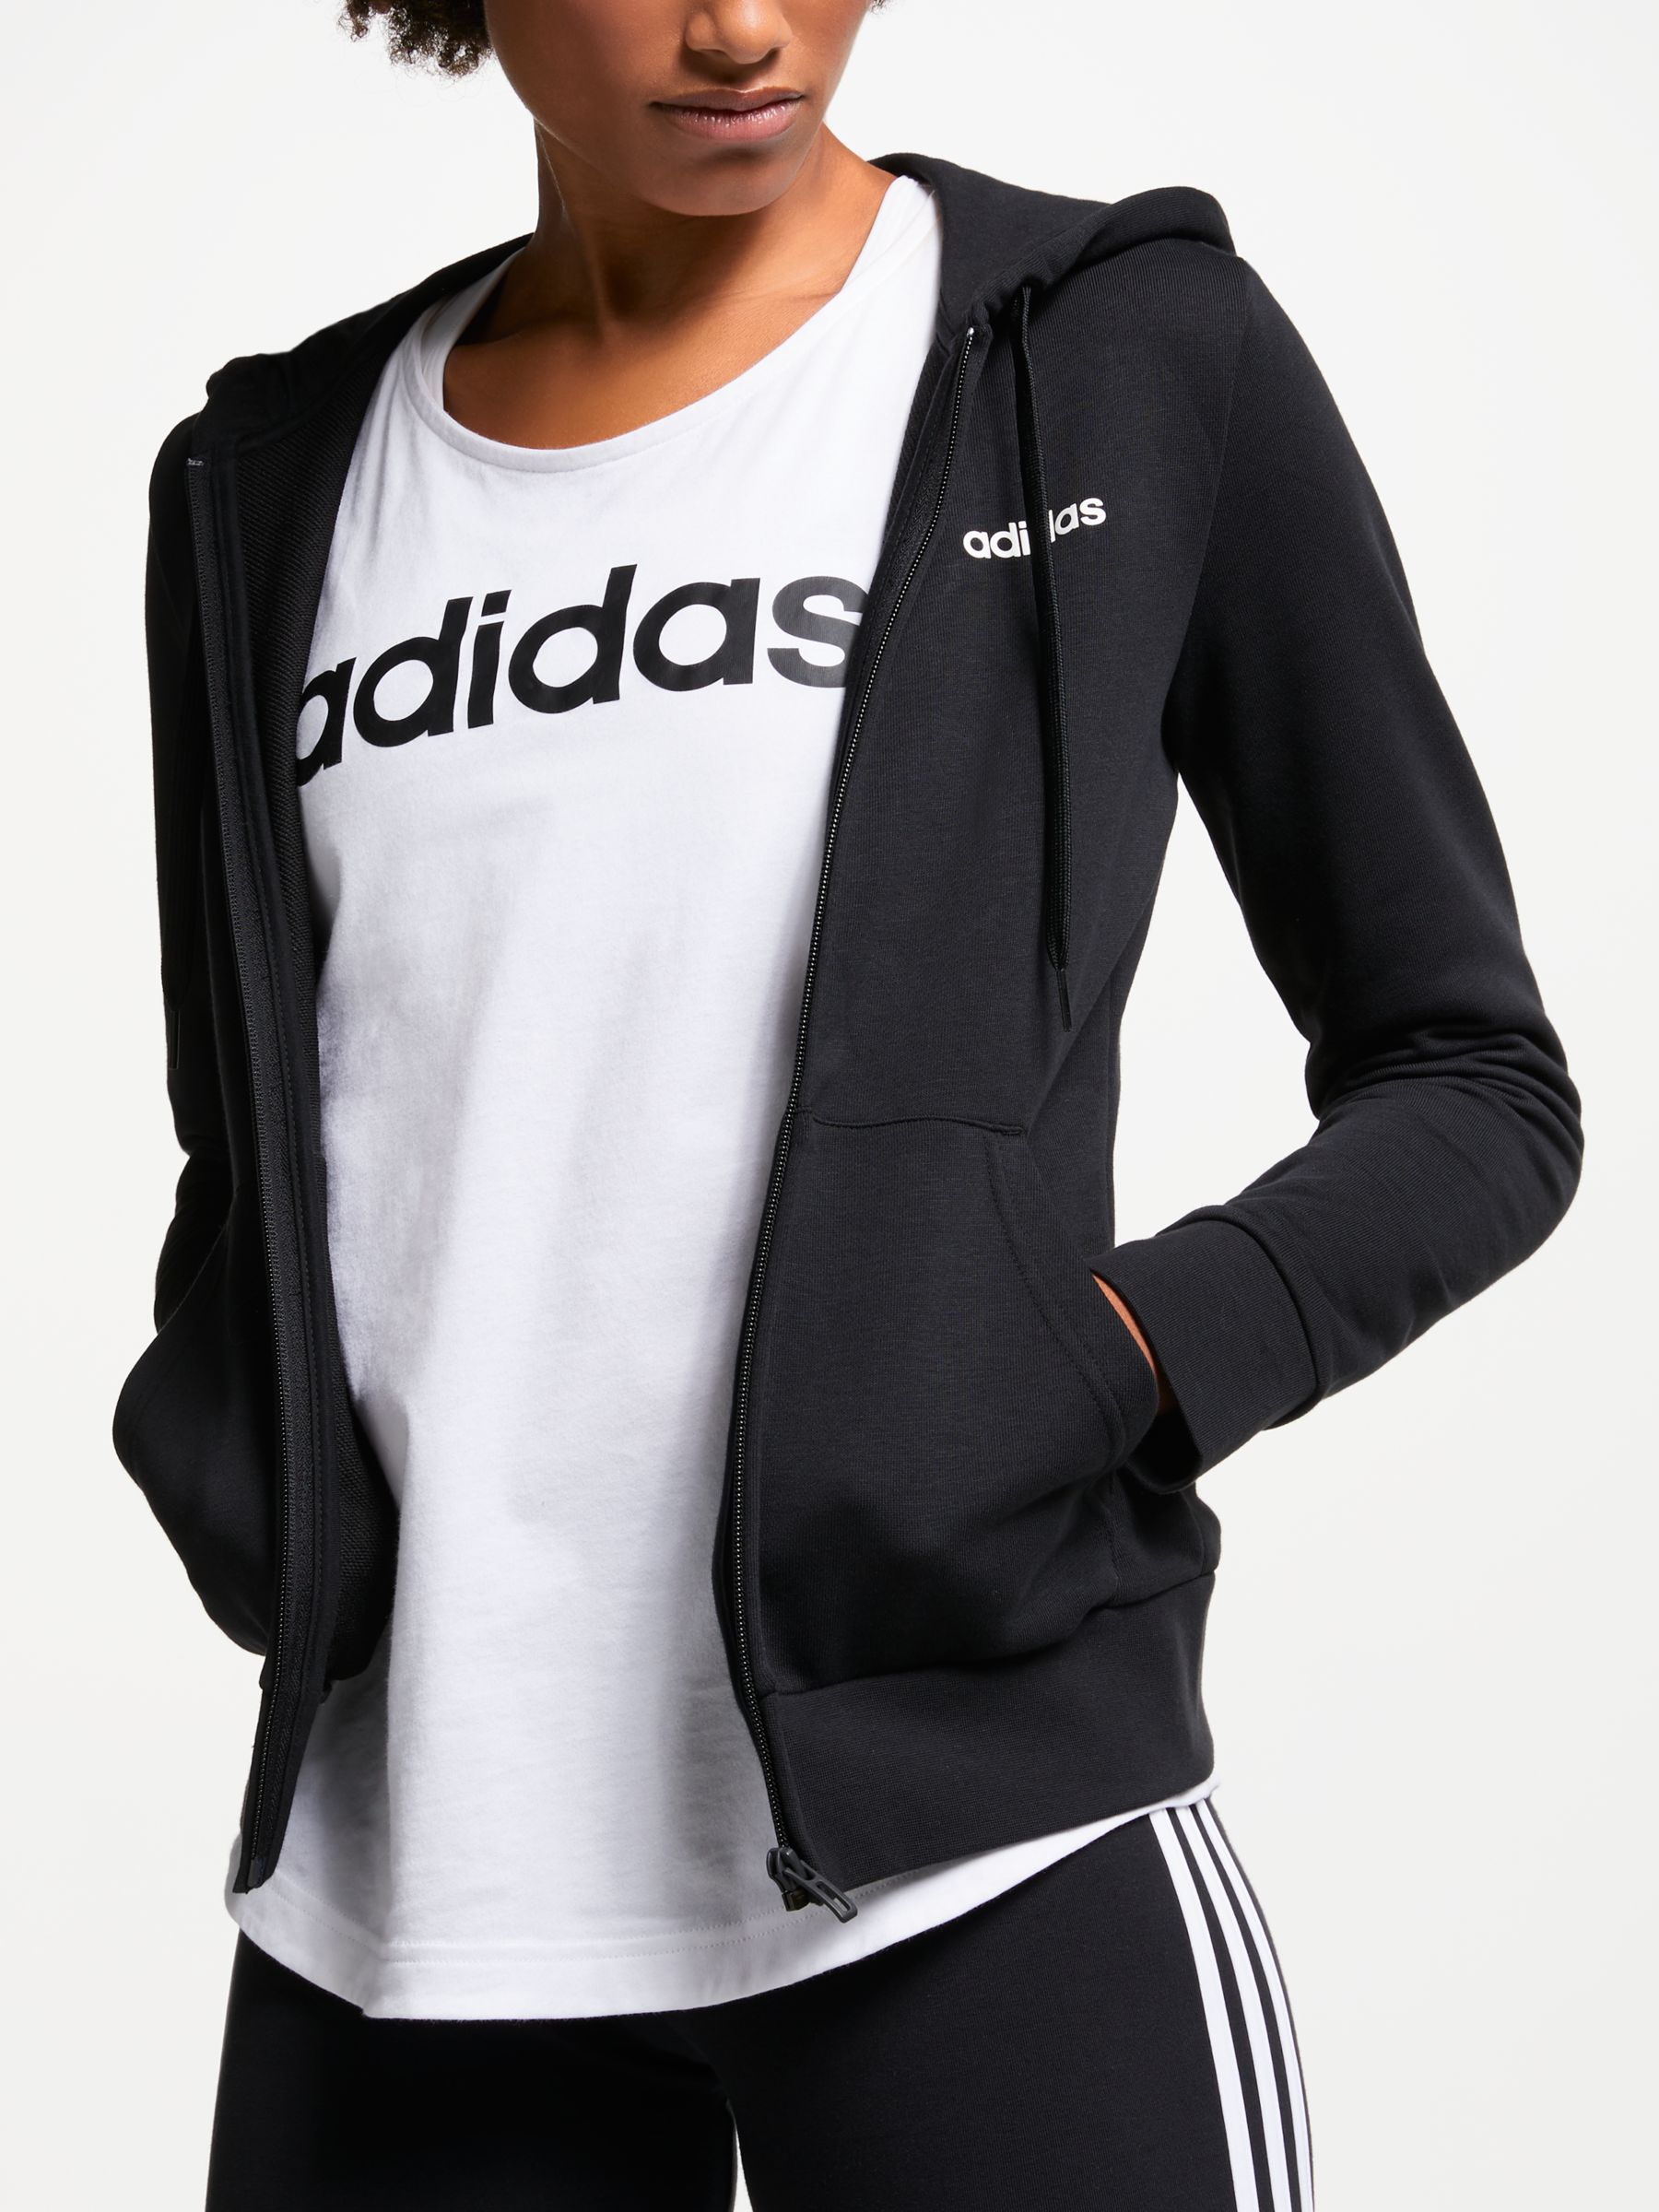 Adidas adidas Essentials Solid Full Zip Training Hoodie, Black